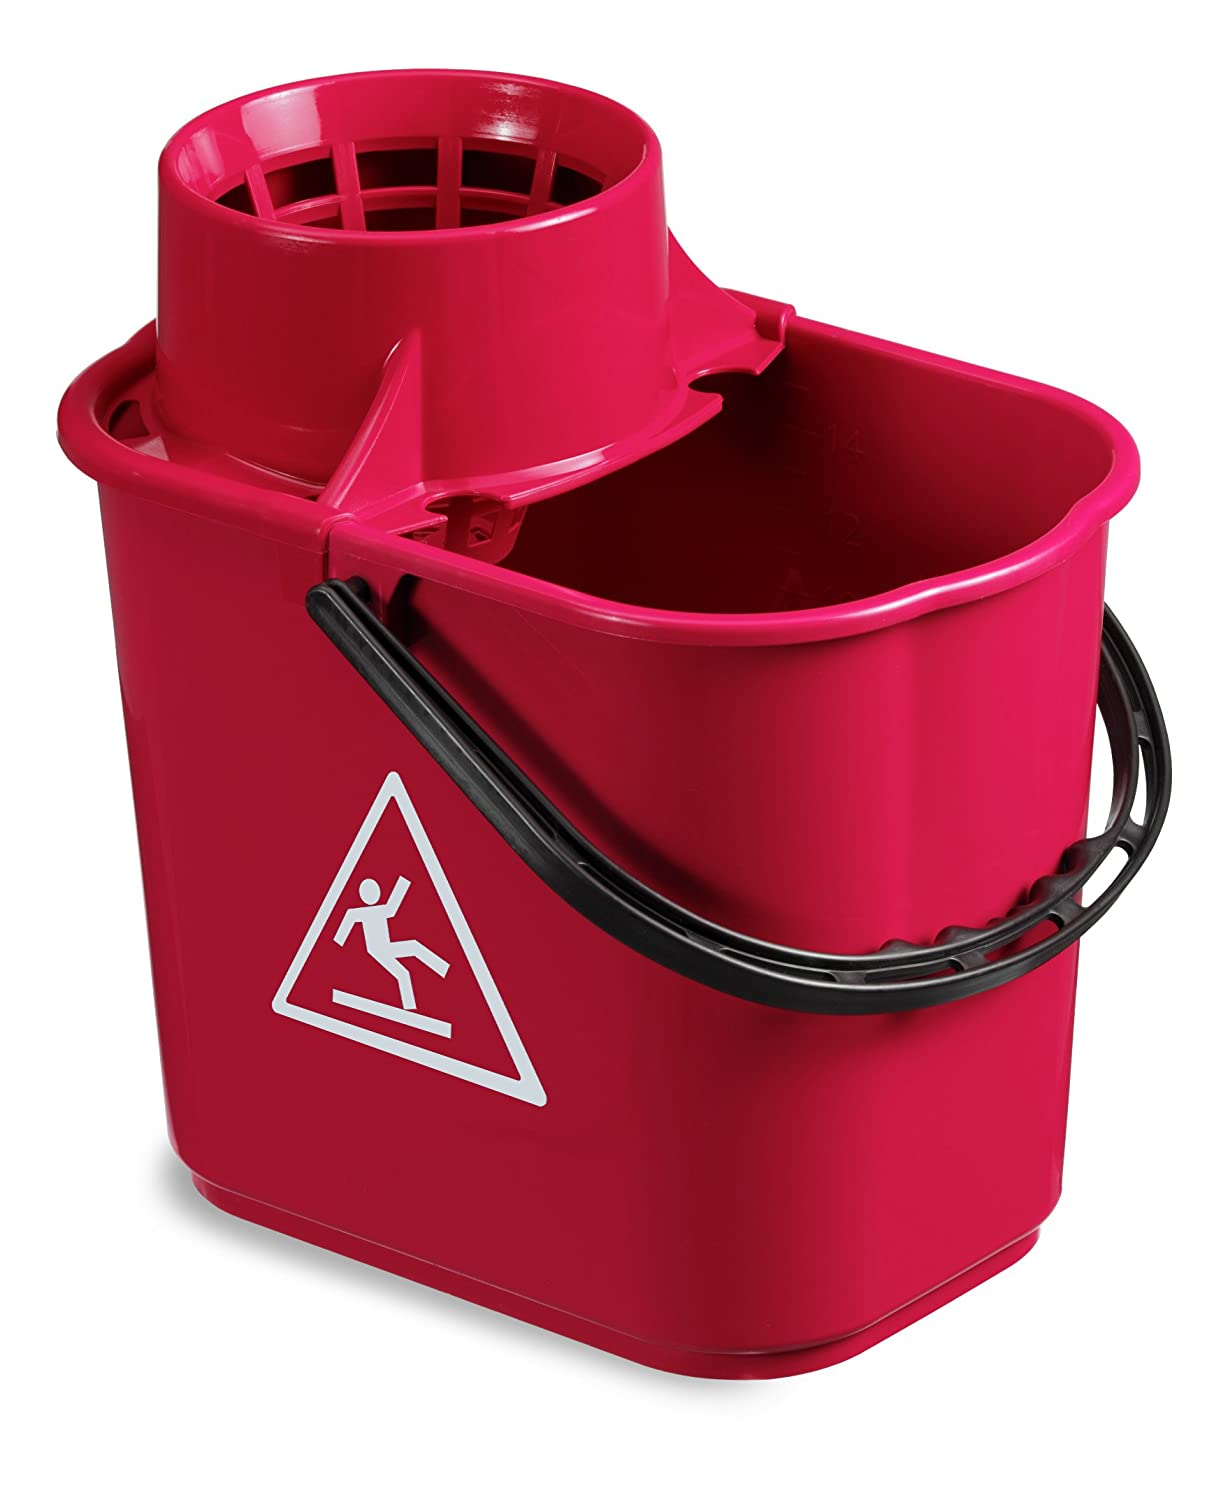 TTS 00005040 Strizzino Easy Bucket (14 Litres, Red TTS CLEANING S.R.L.